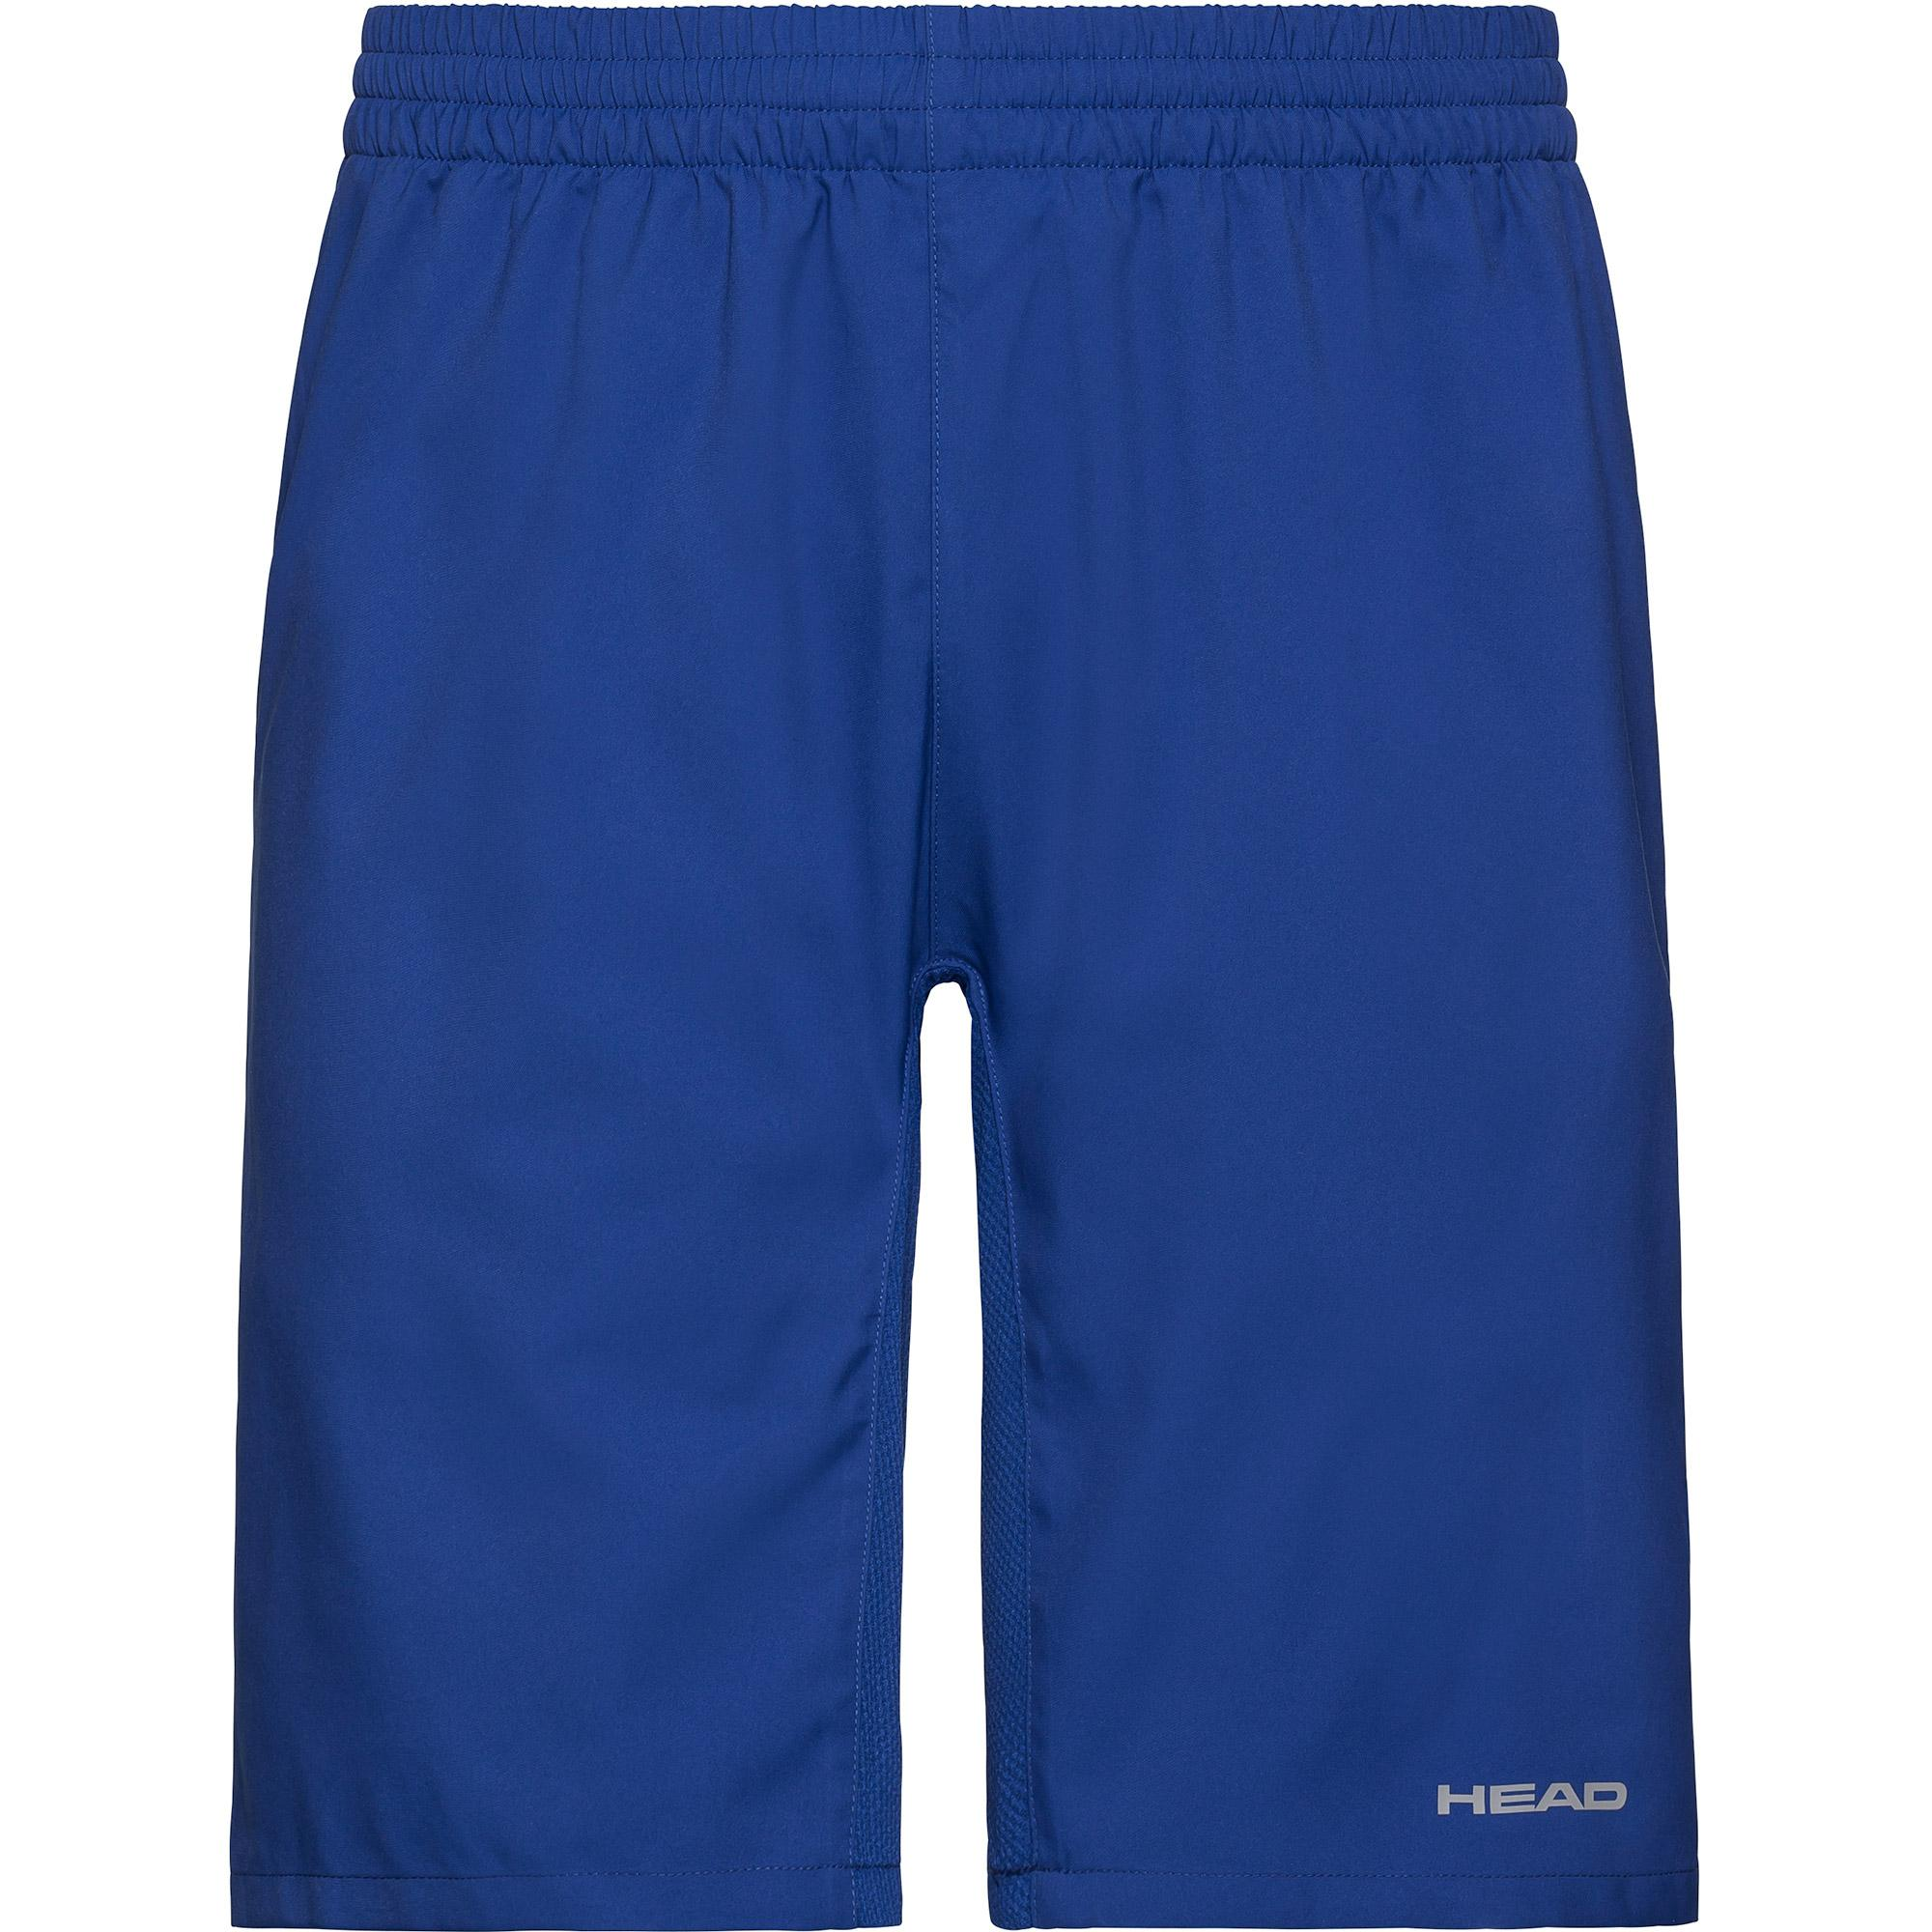 086b0a6b26970 Head Boys Club Bermudas Shorts - Royal Blue - Tennisnuts.com